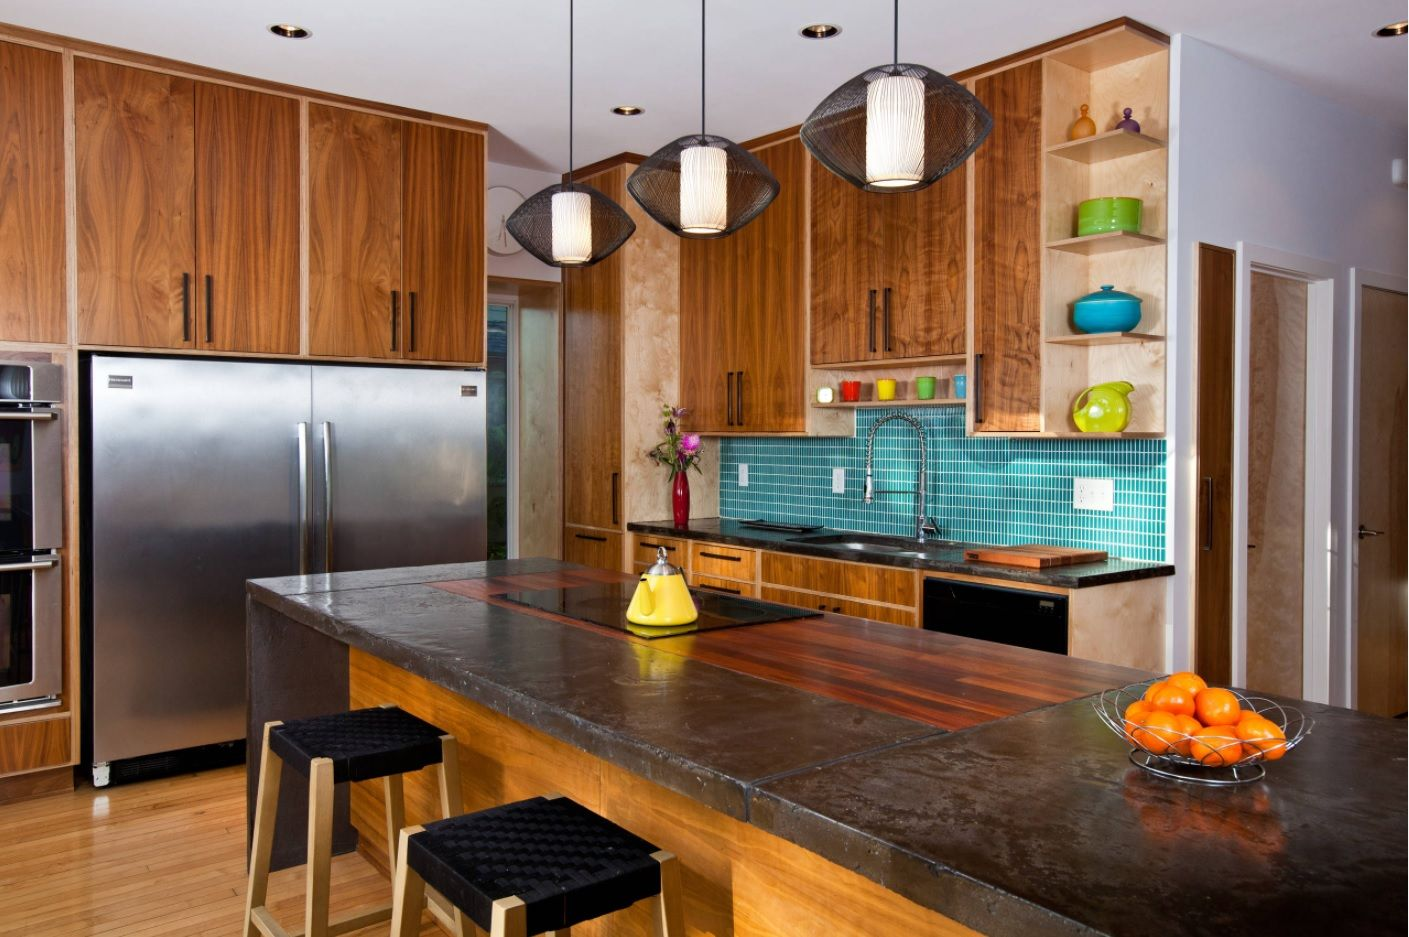 DIY Pouring Concrete Countertops. Interior Usage, Photos, Ideas. Chocolate color for naturally decorated klitchen